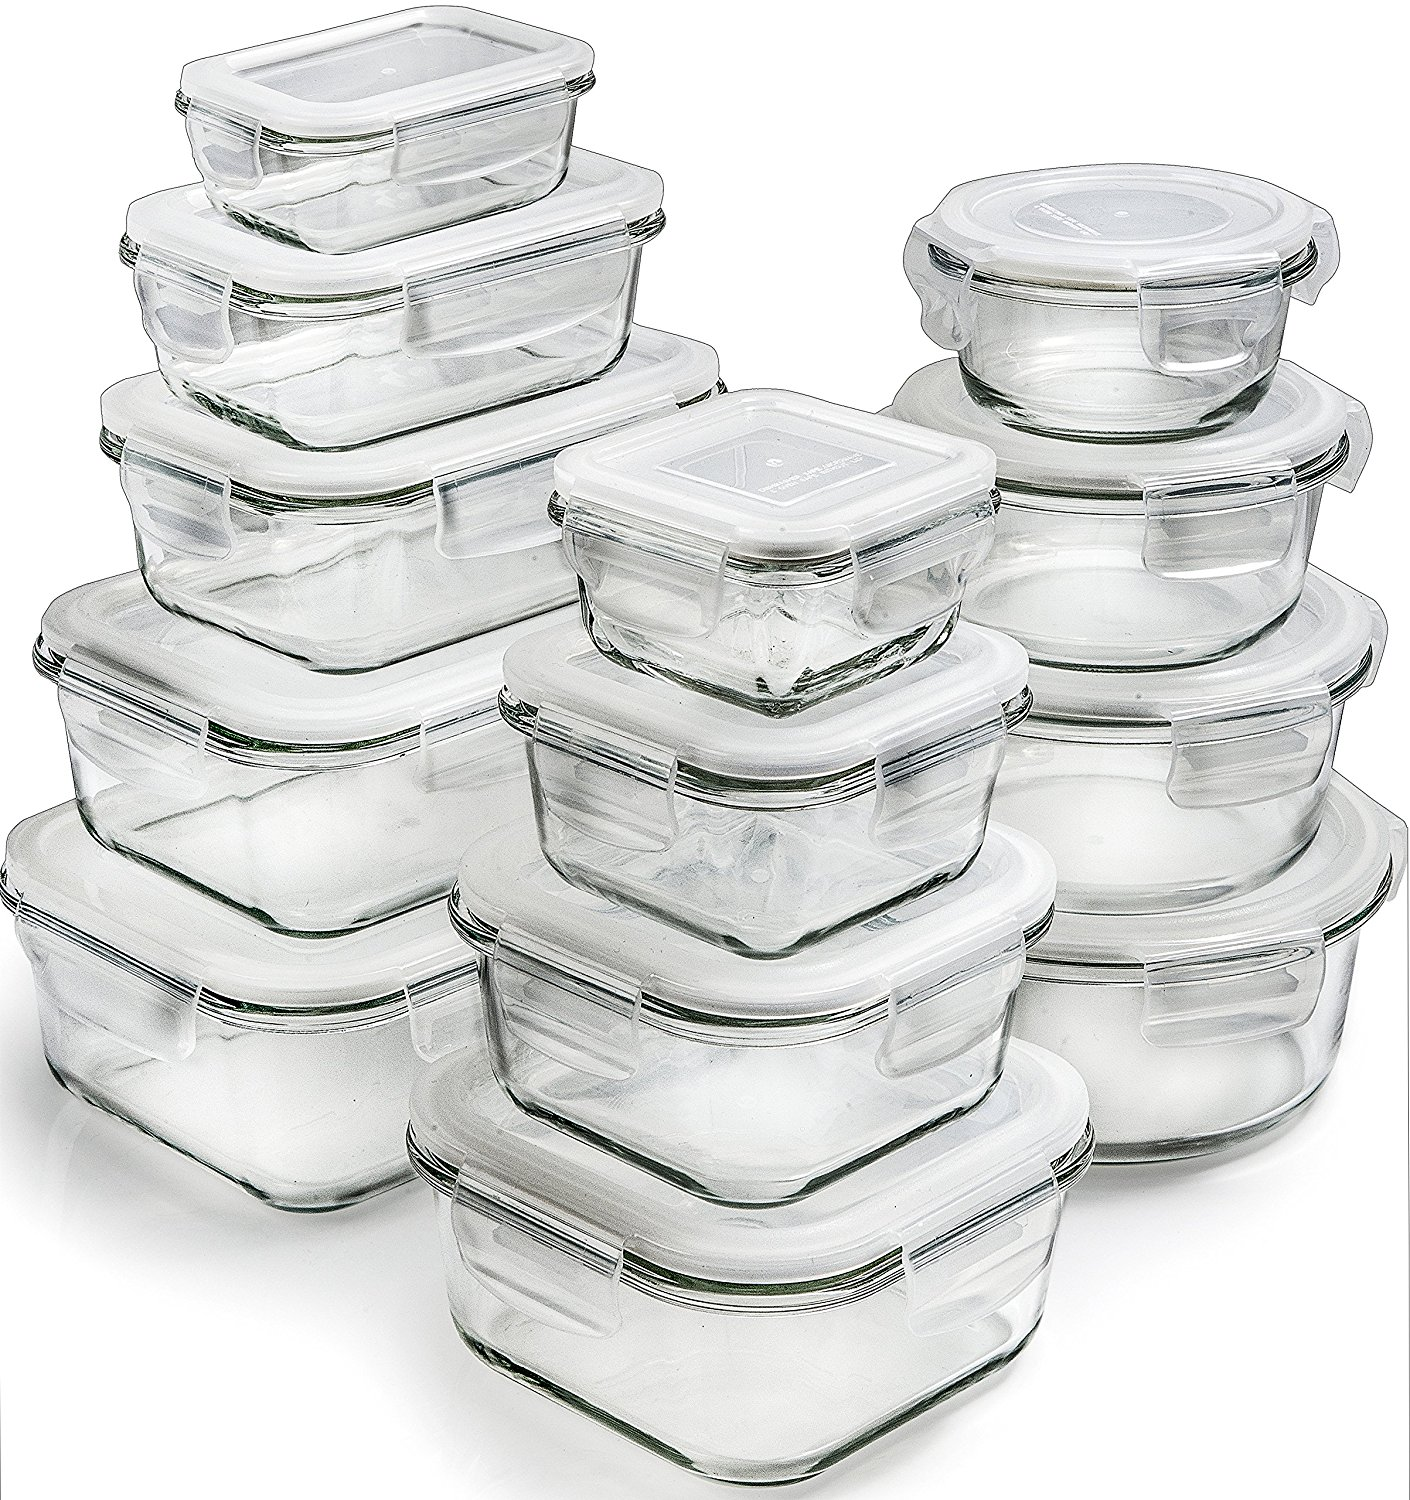 Glass Food Storage Containers Image